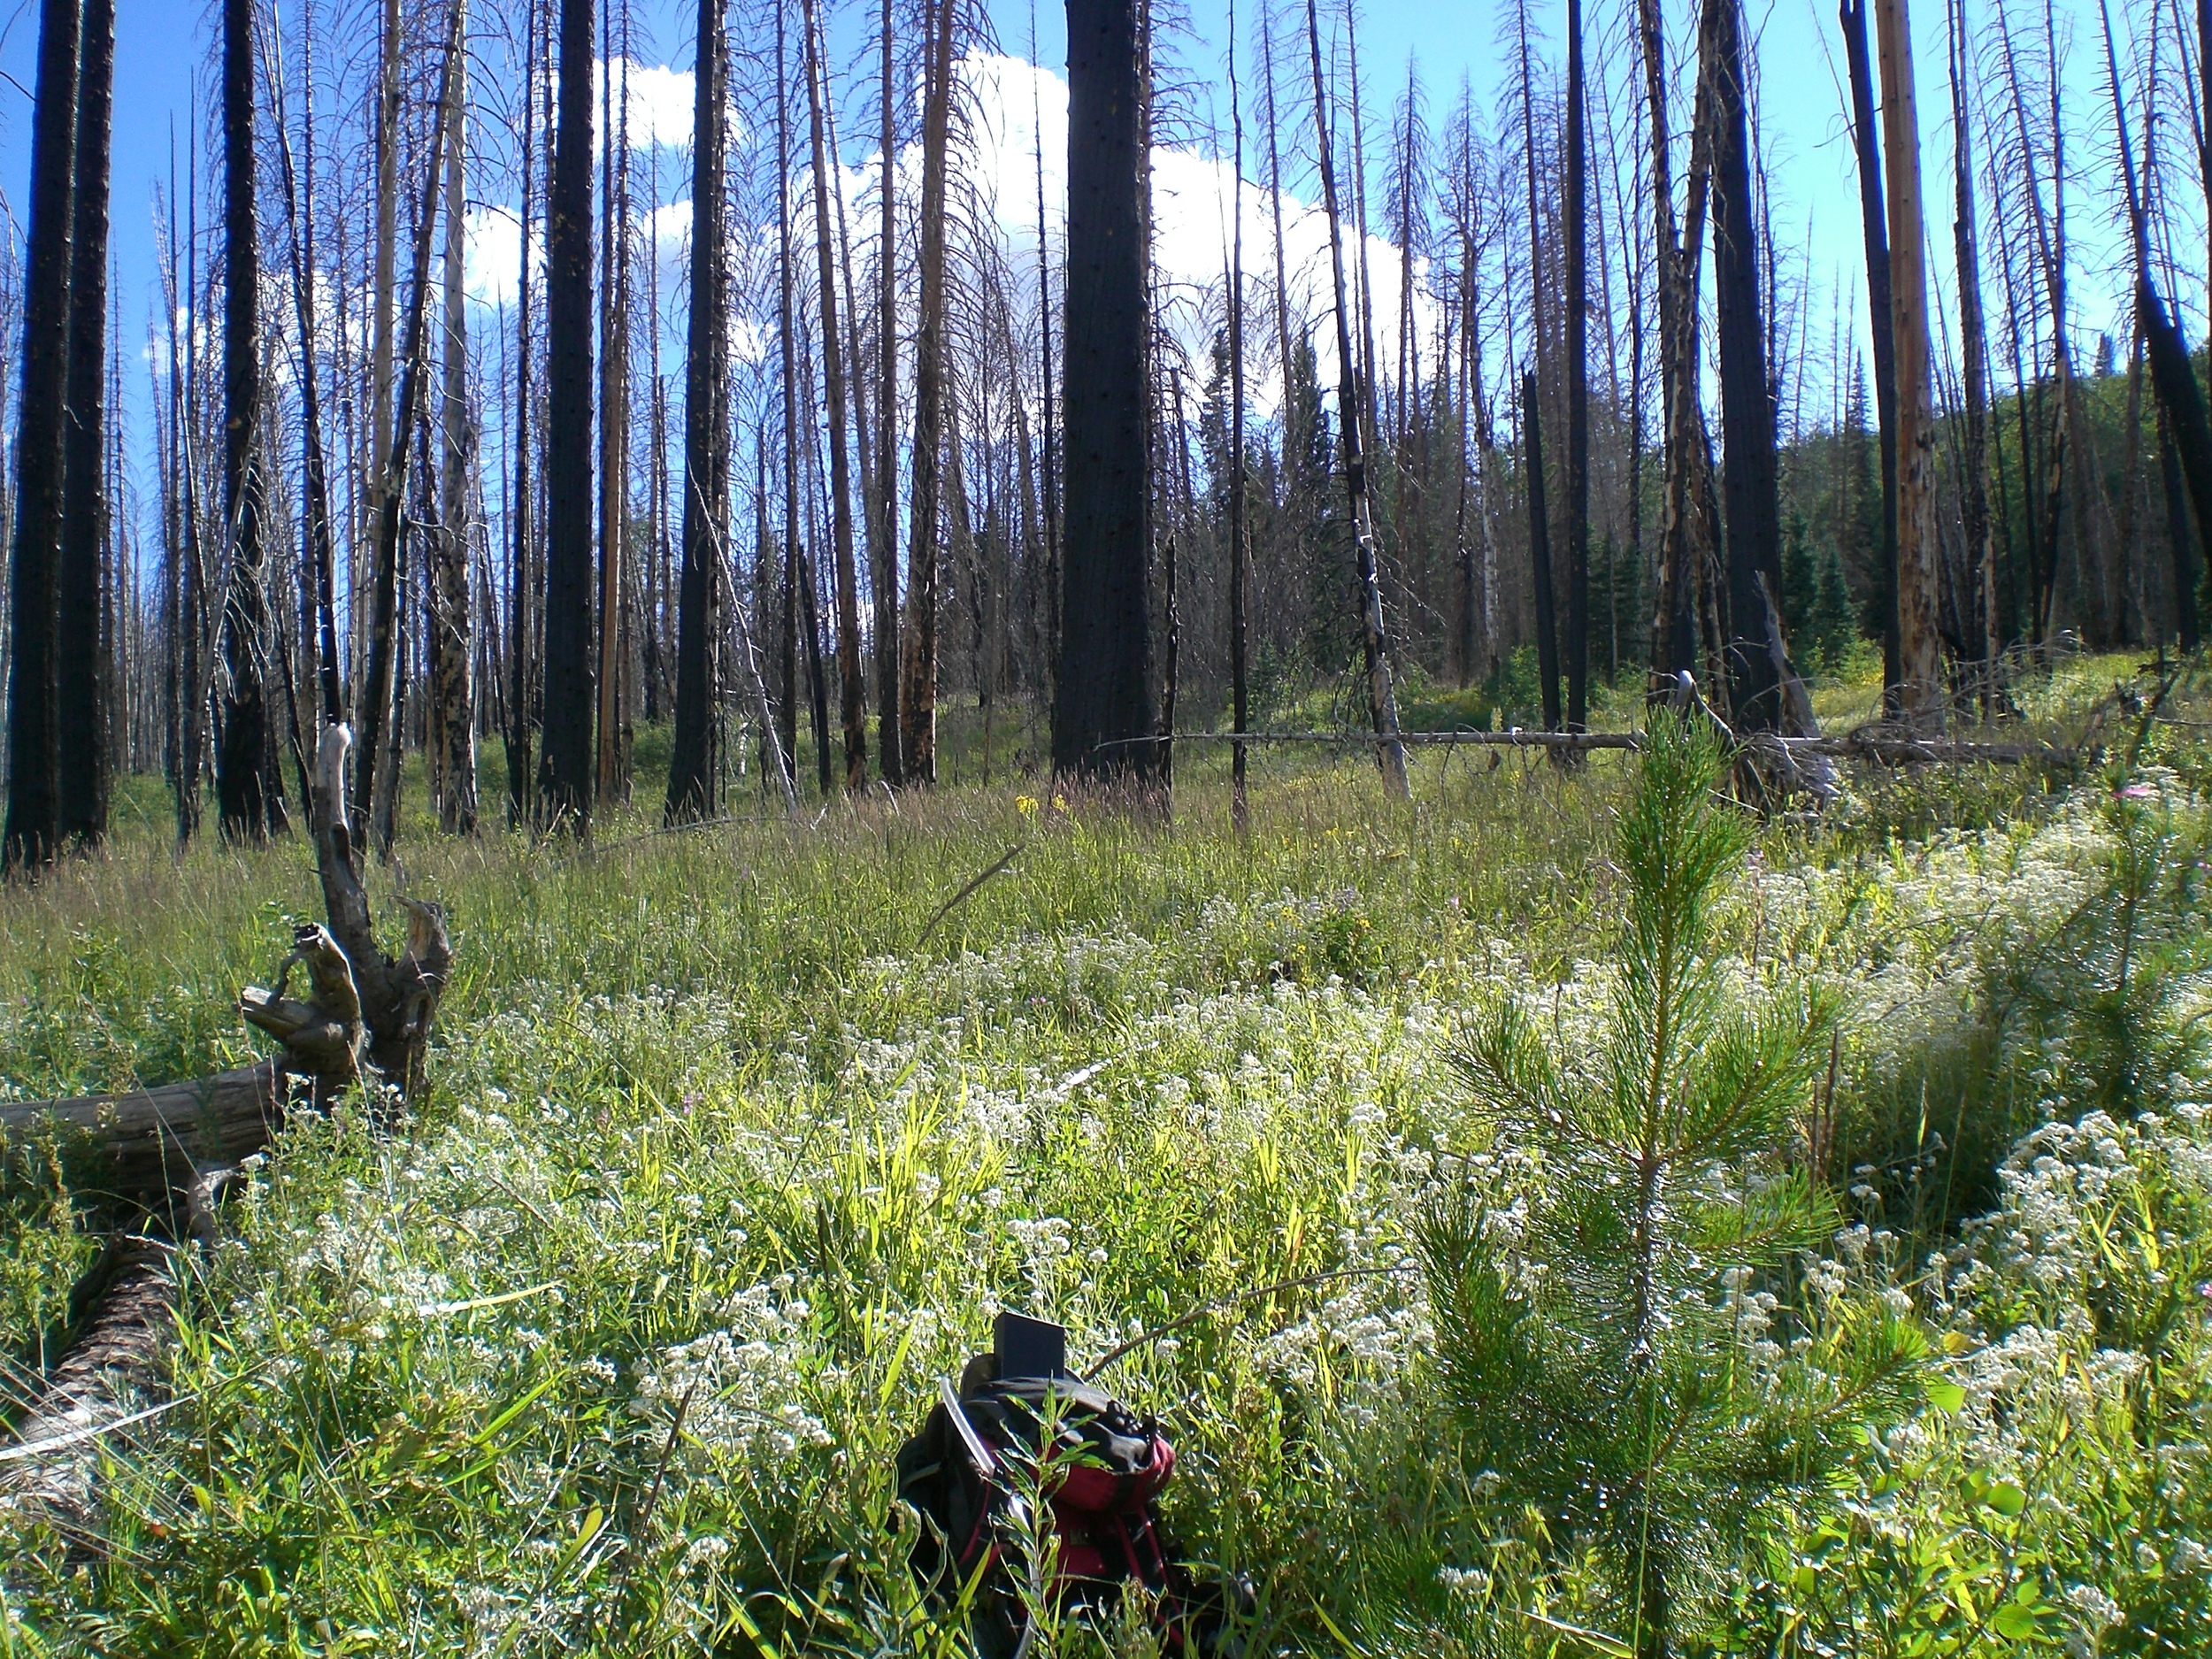 Burned area with regenerating lodgepole pine in the front.